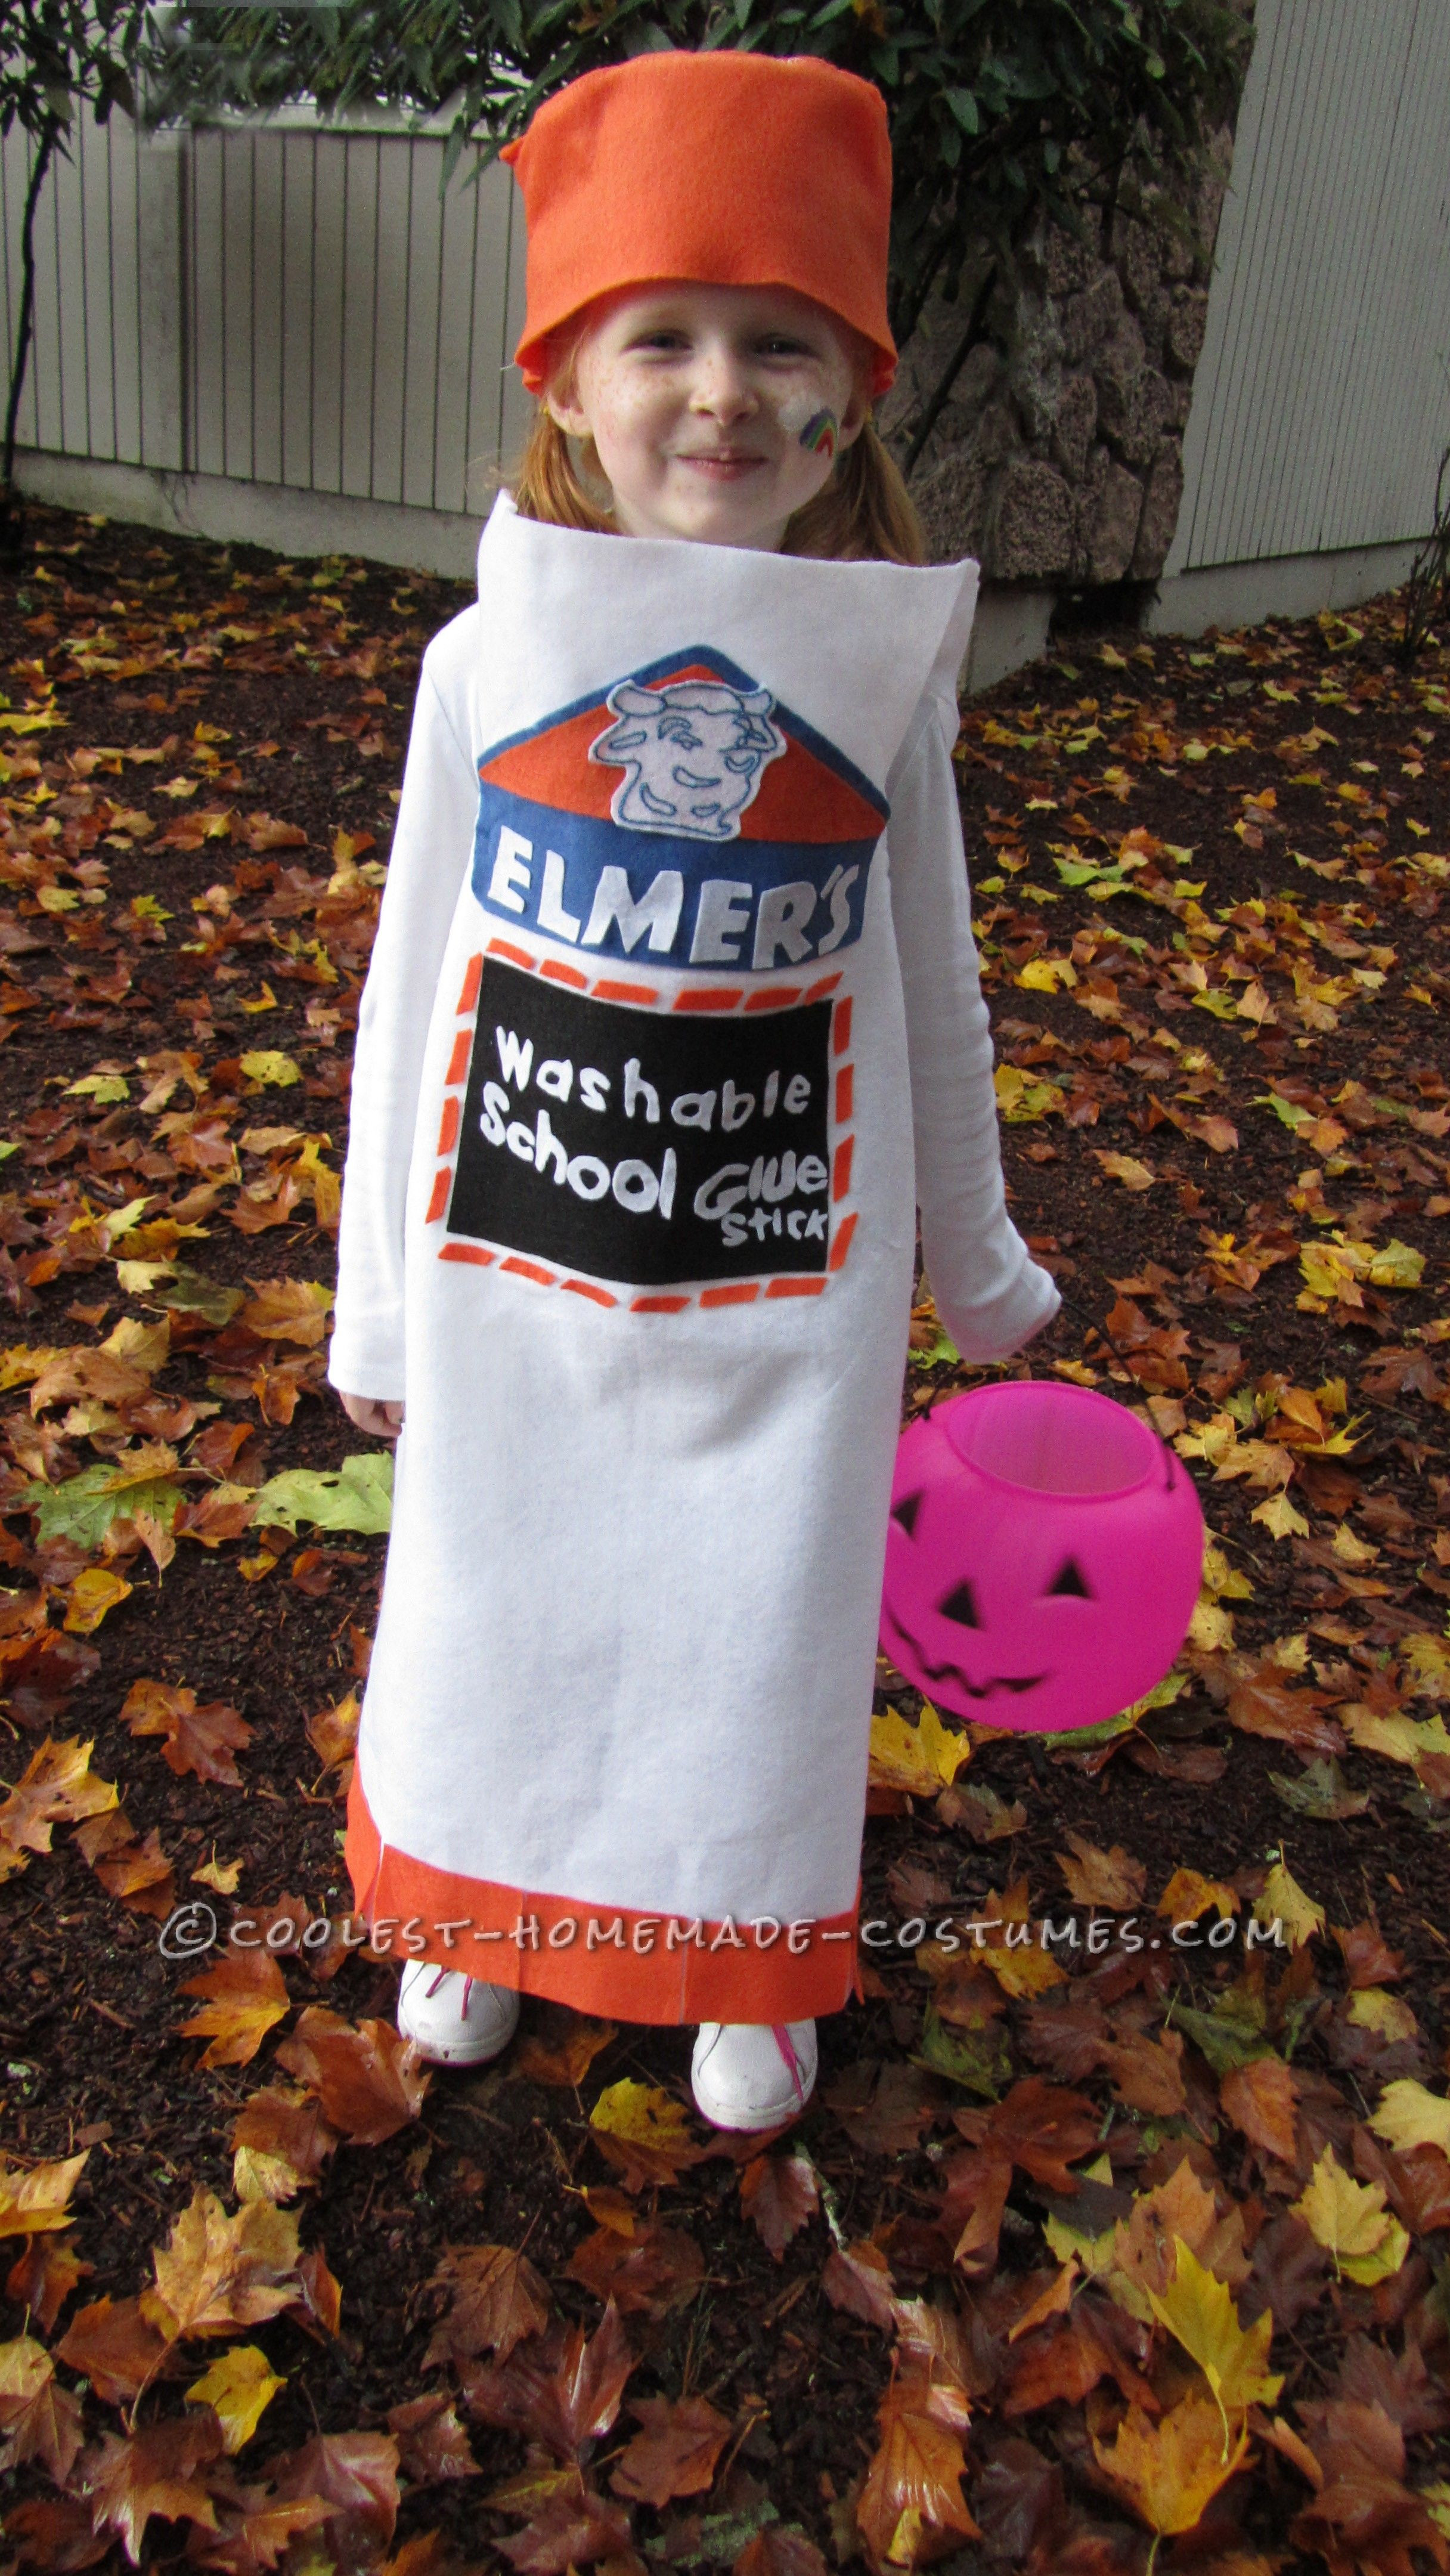 Best ideas about Cool DIY Costumes . Save or Pin Cool Homemade Elmer's Glue Stick Costume for a Girl Now.